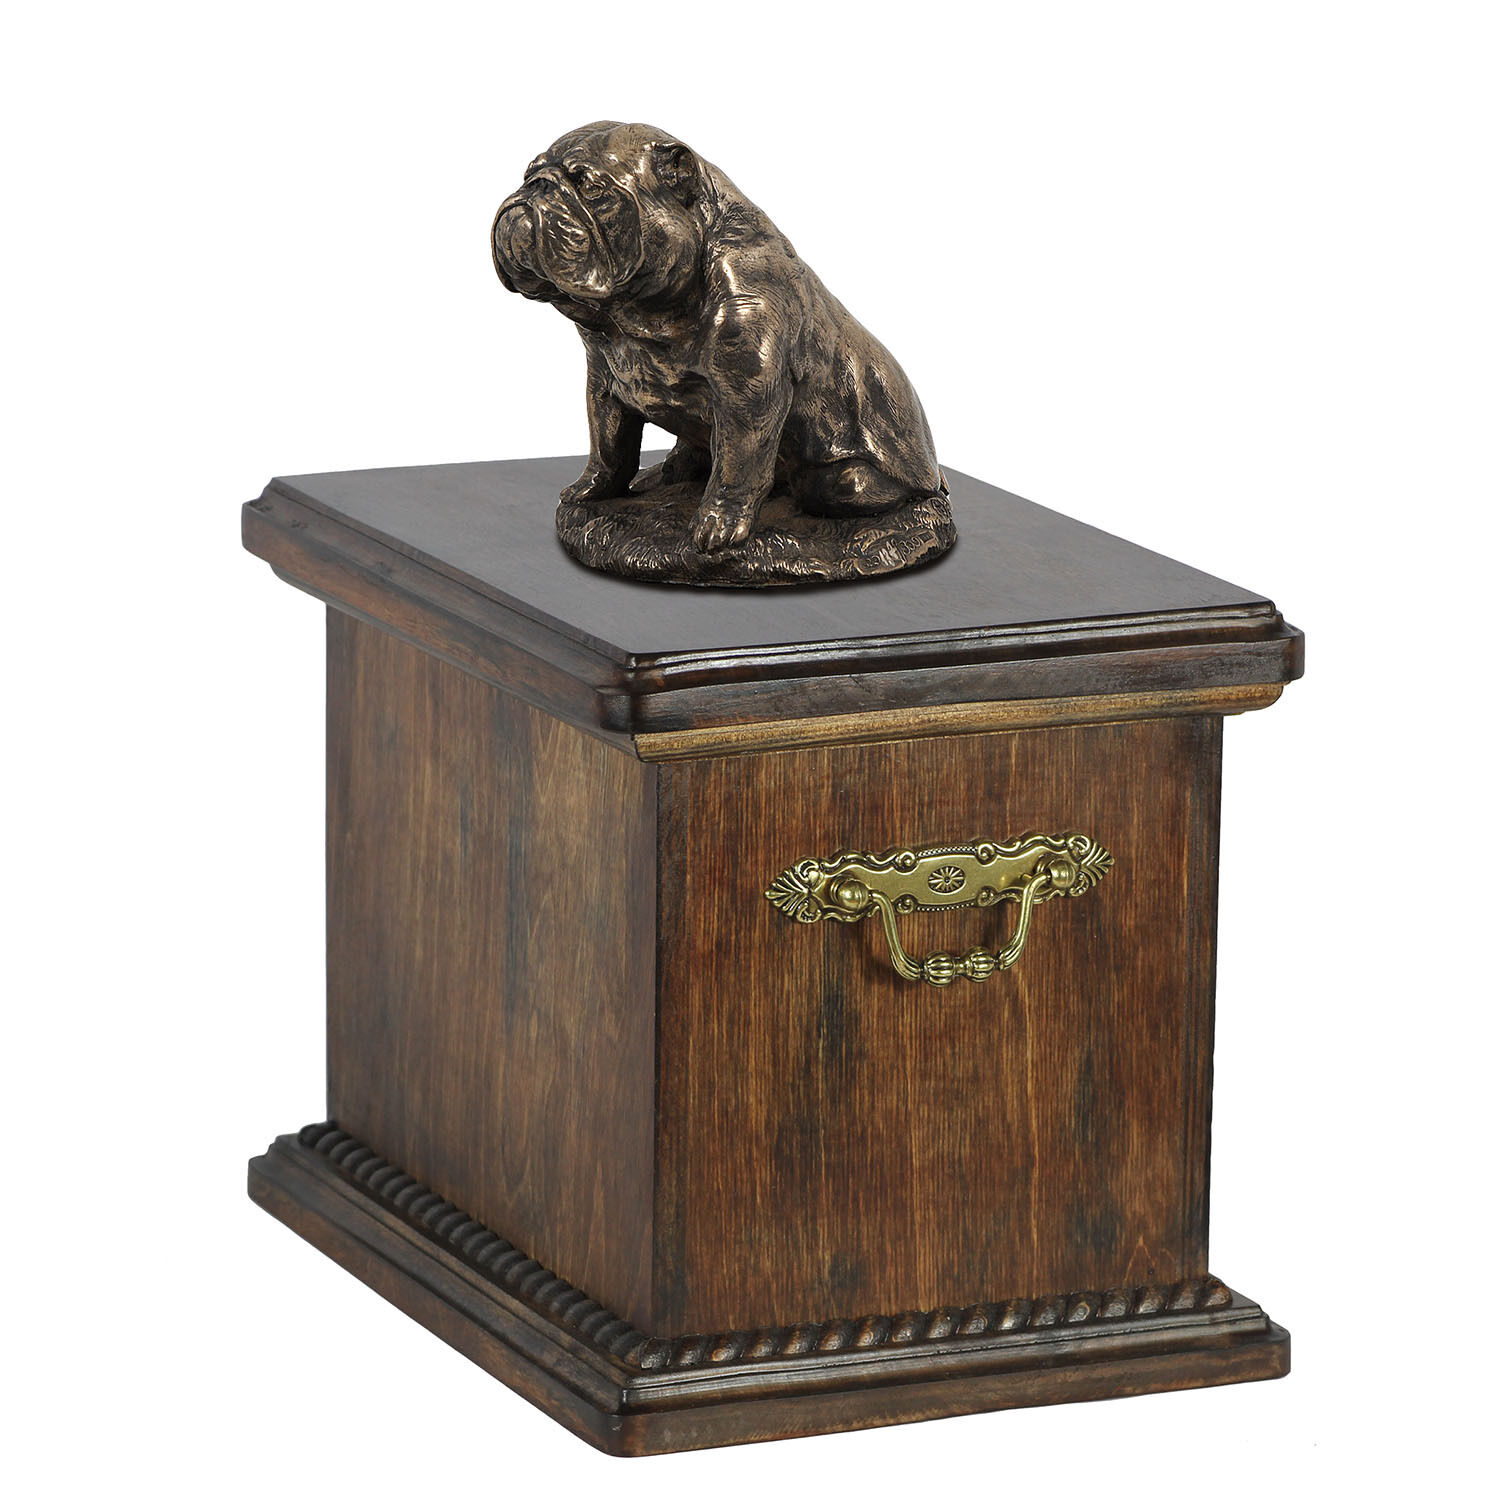 Solid Solid Solid Wood Casket  Bulldog sittin Memorial Urn for Dog's ashes with dog statue. 11bb9f